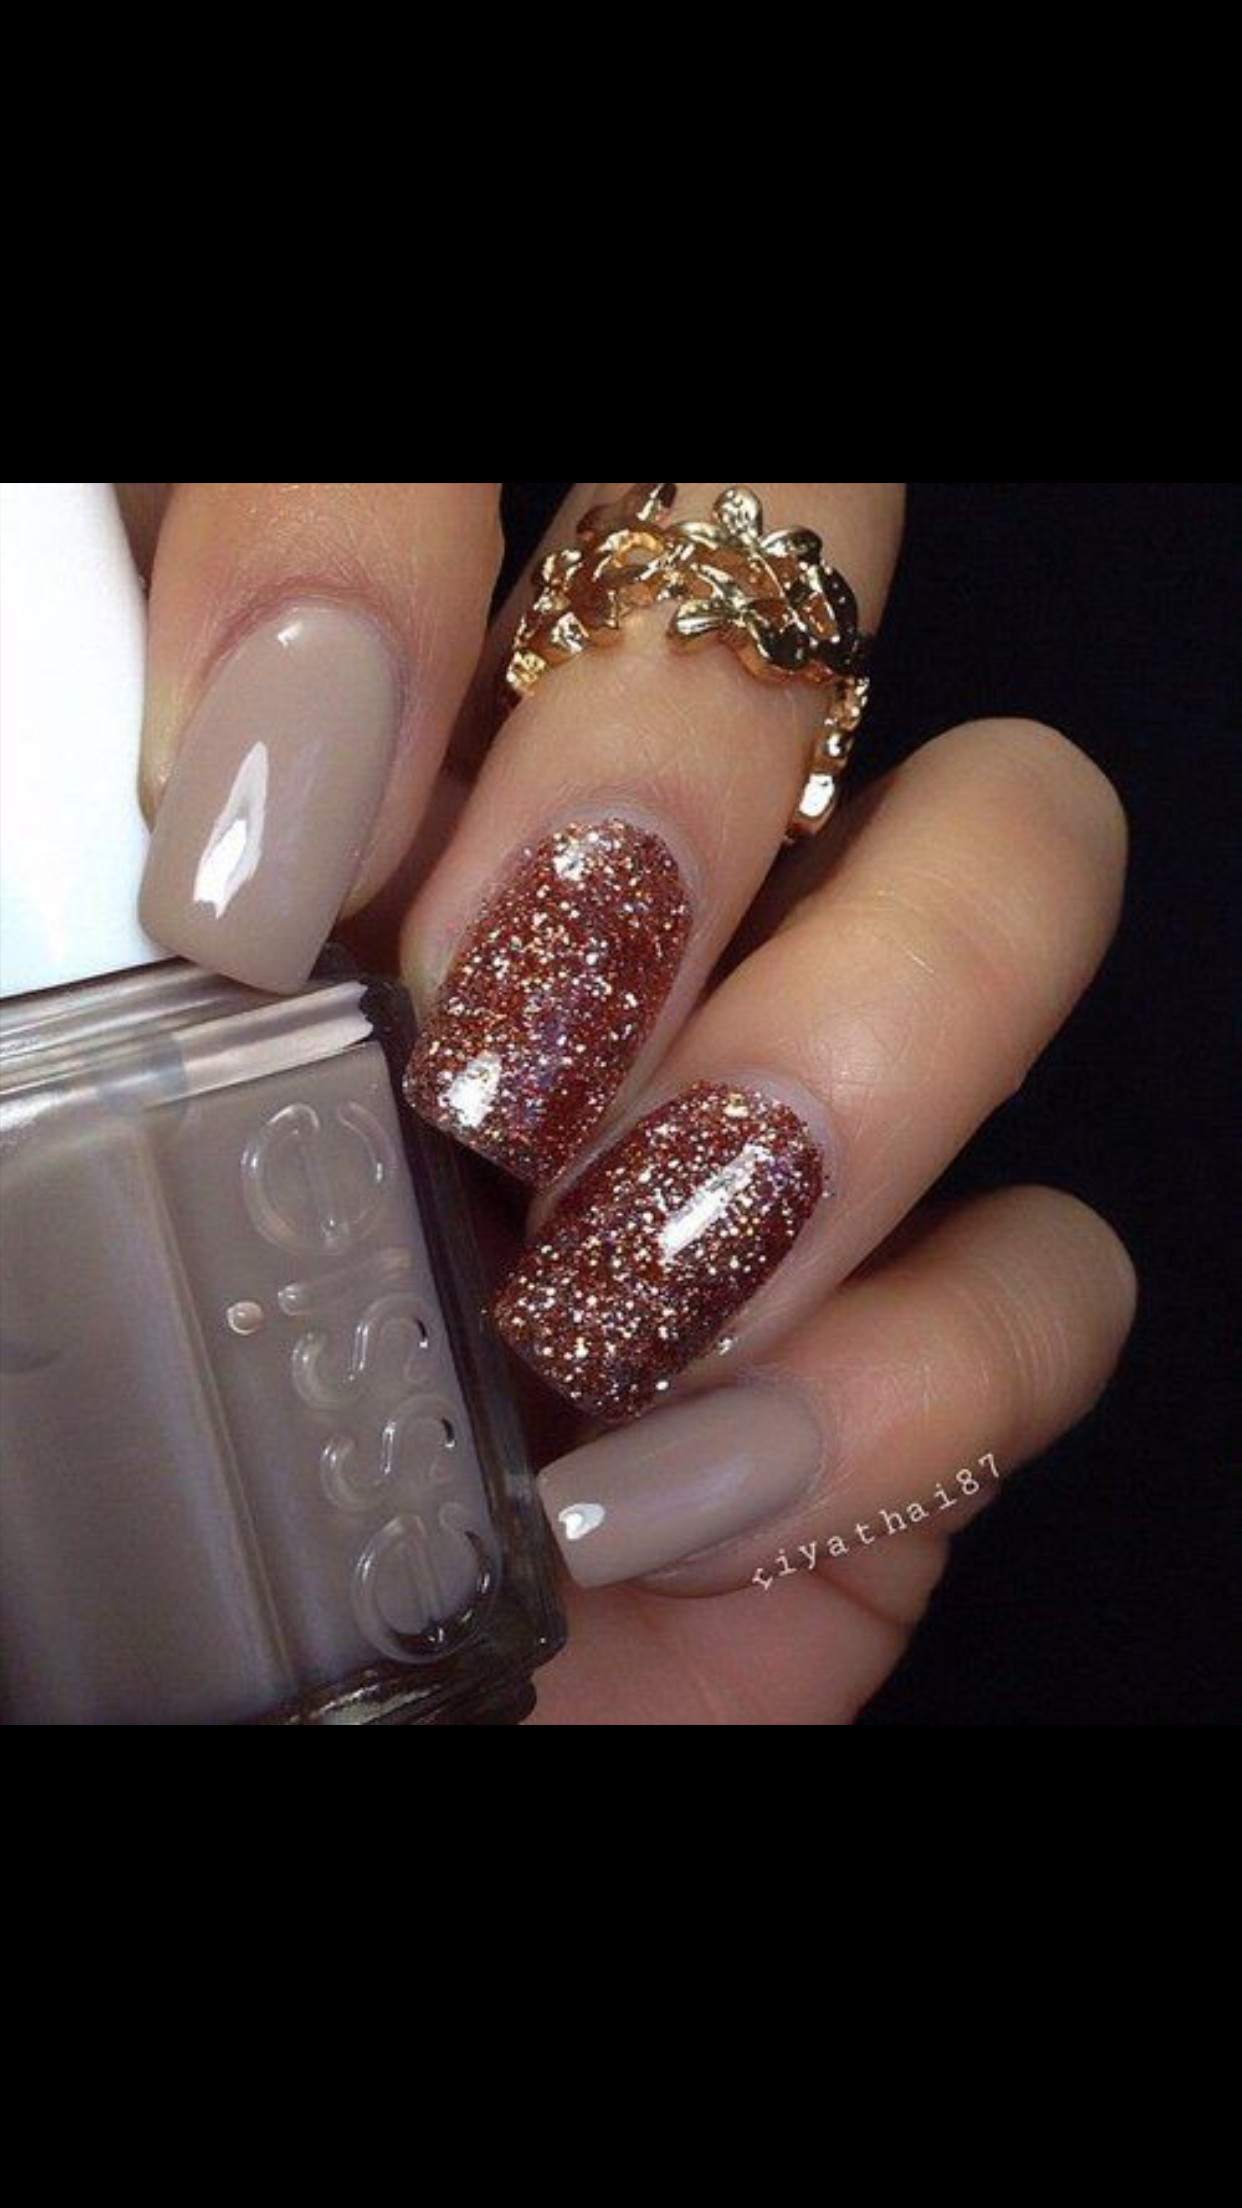 Pin by Hope Blankenship-Endicott on Red and Brown Nails | Pinterest ...